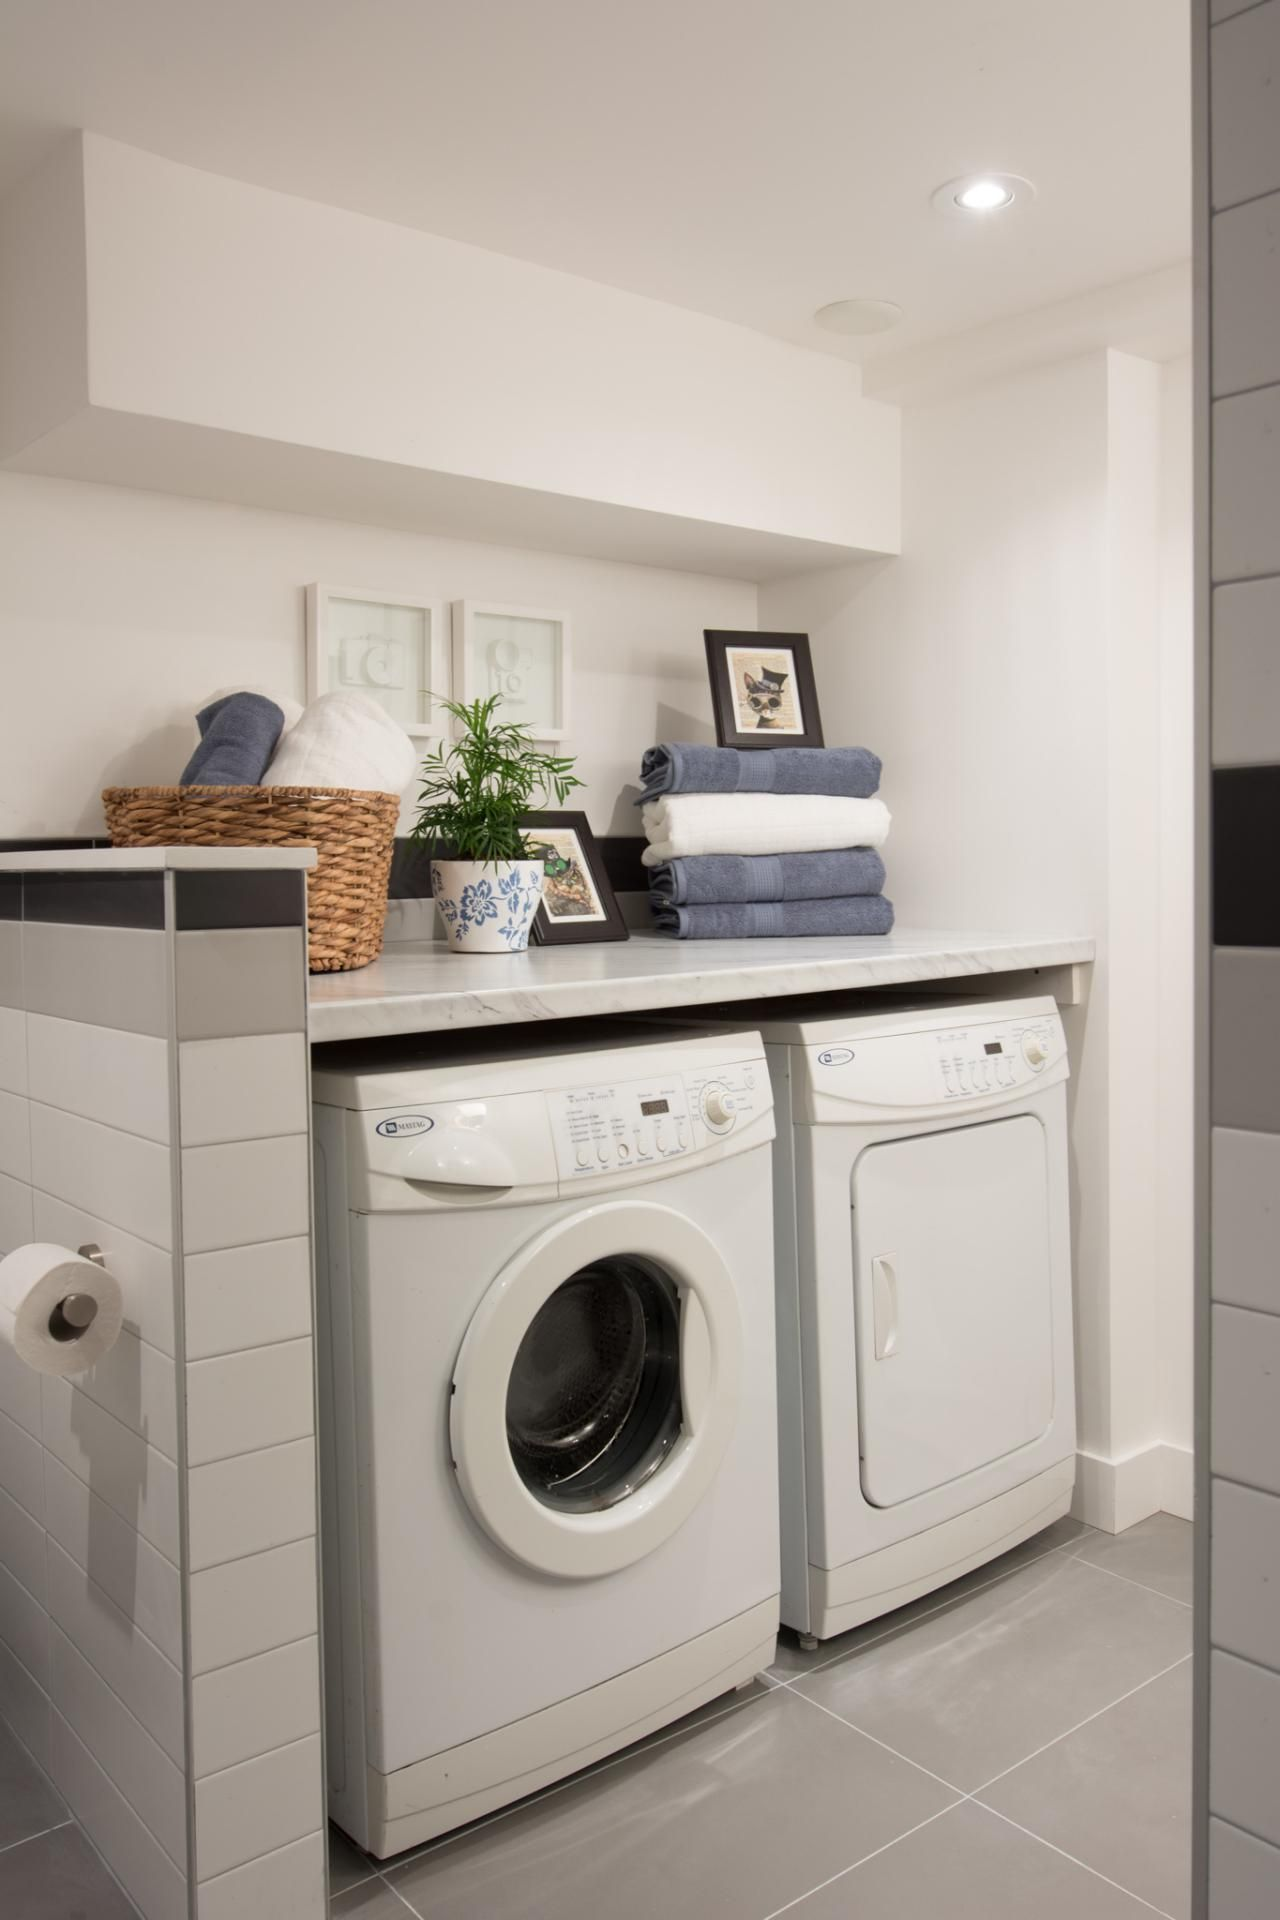 As Seen On HGTVu0027s Love It Or List It, Hilaryu0027s Design For This Laundry Room/ Bathroom Combination Includes A Neutral Color Palette With Complimentary  Pops Of ... Part 69